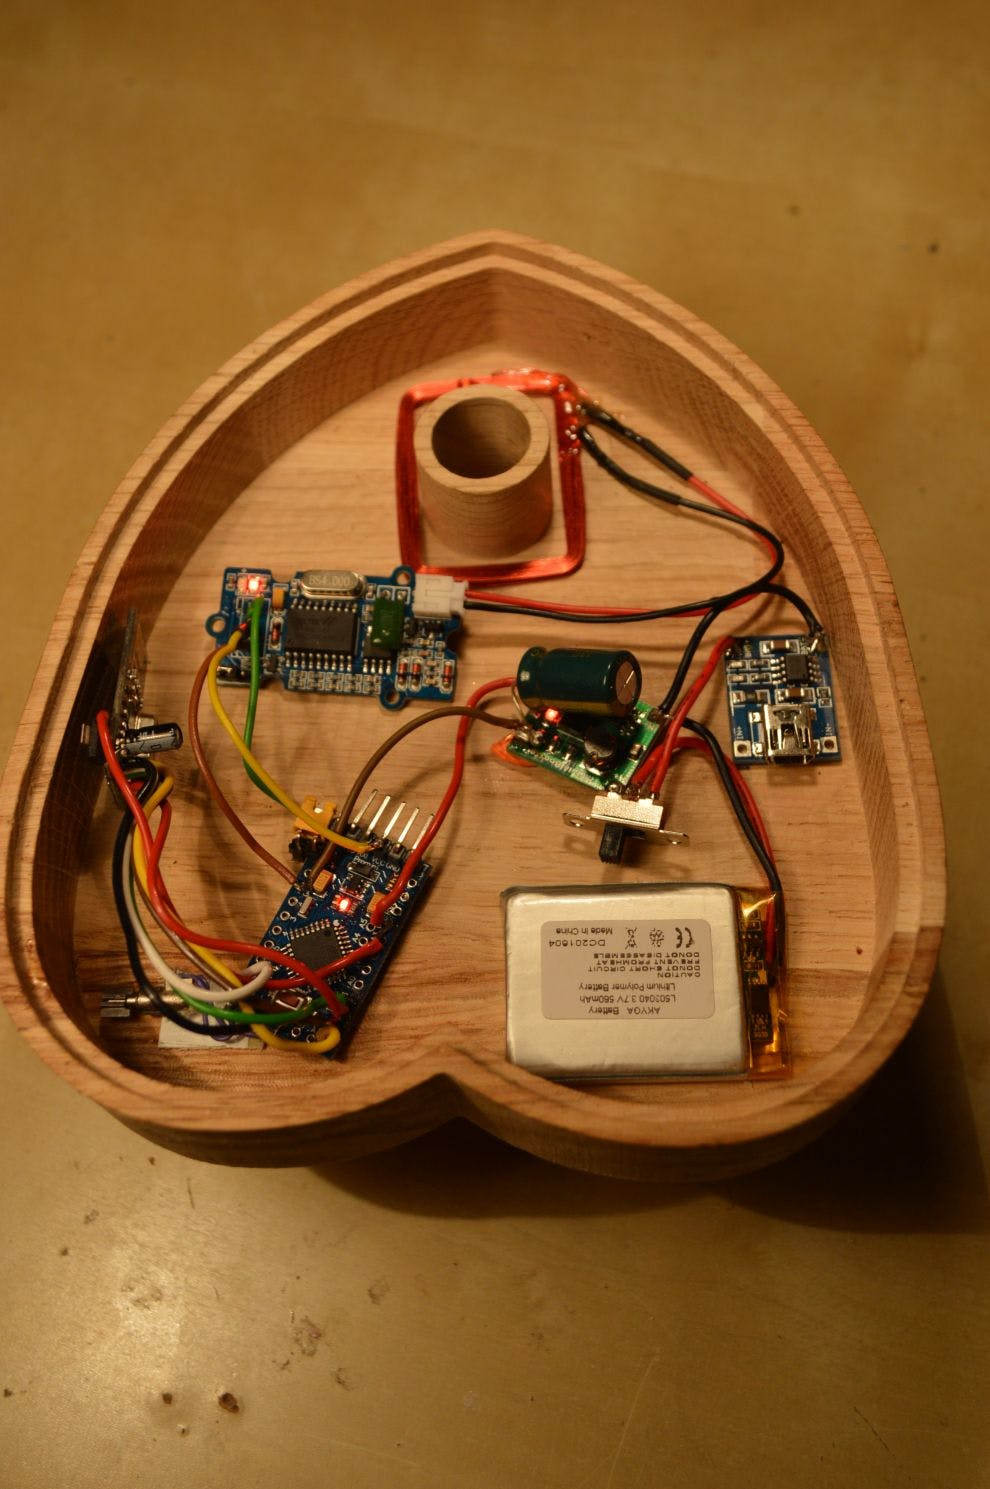 The planchette with a temporary switch instead of the reed switch used in the end.